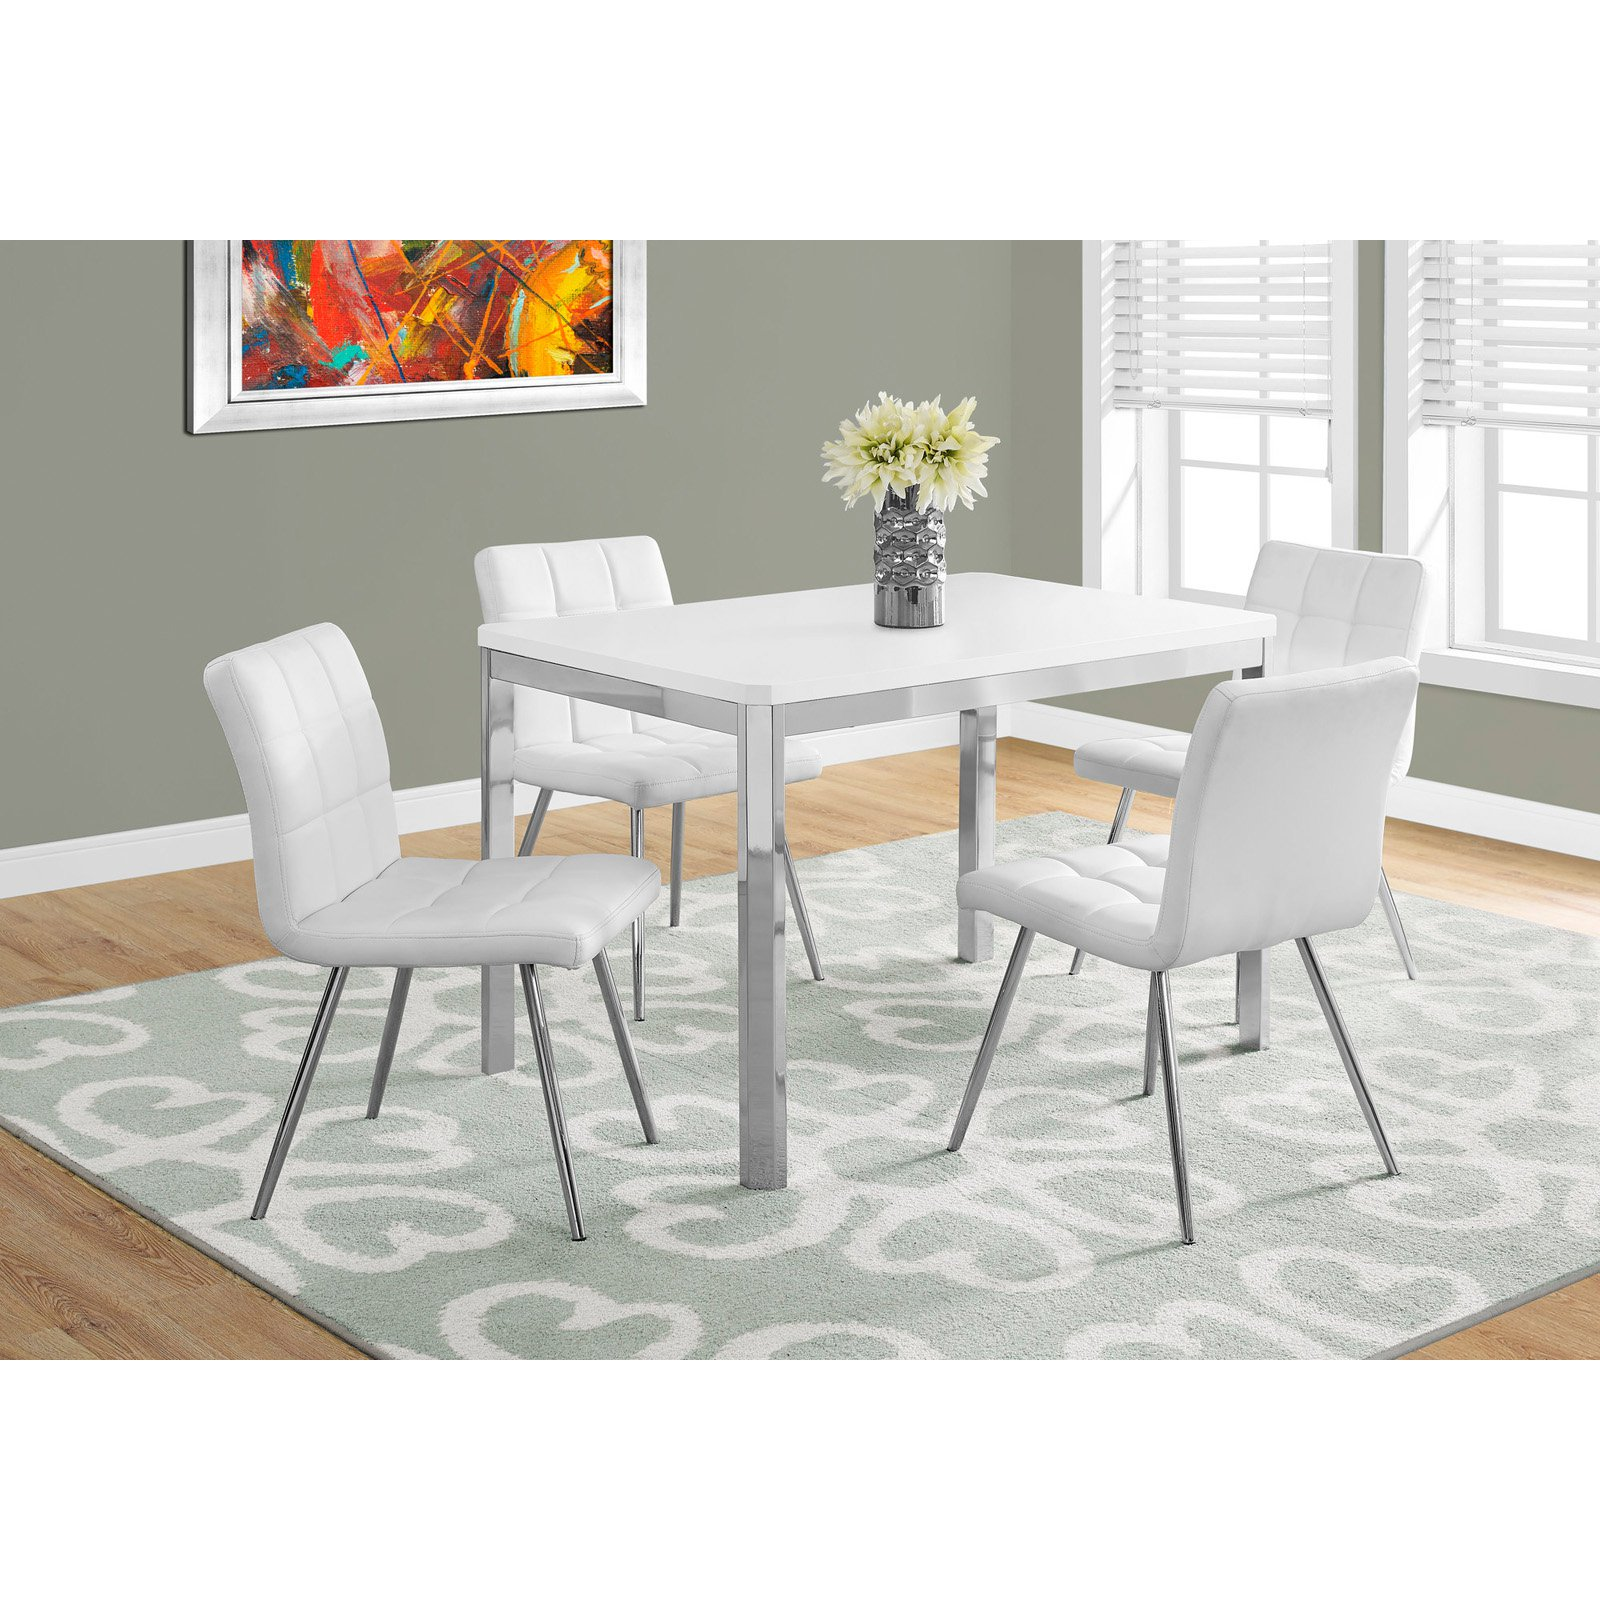 Monarch Specialties 48 in. Rectangular Dining Table - White/Chrome